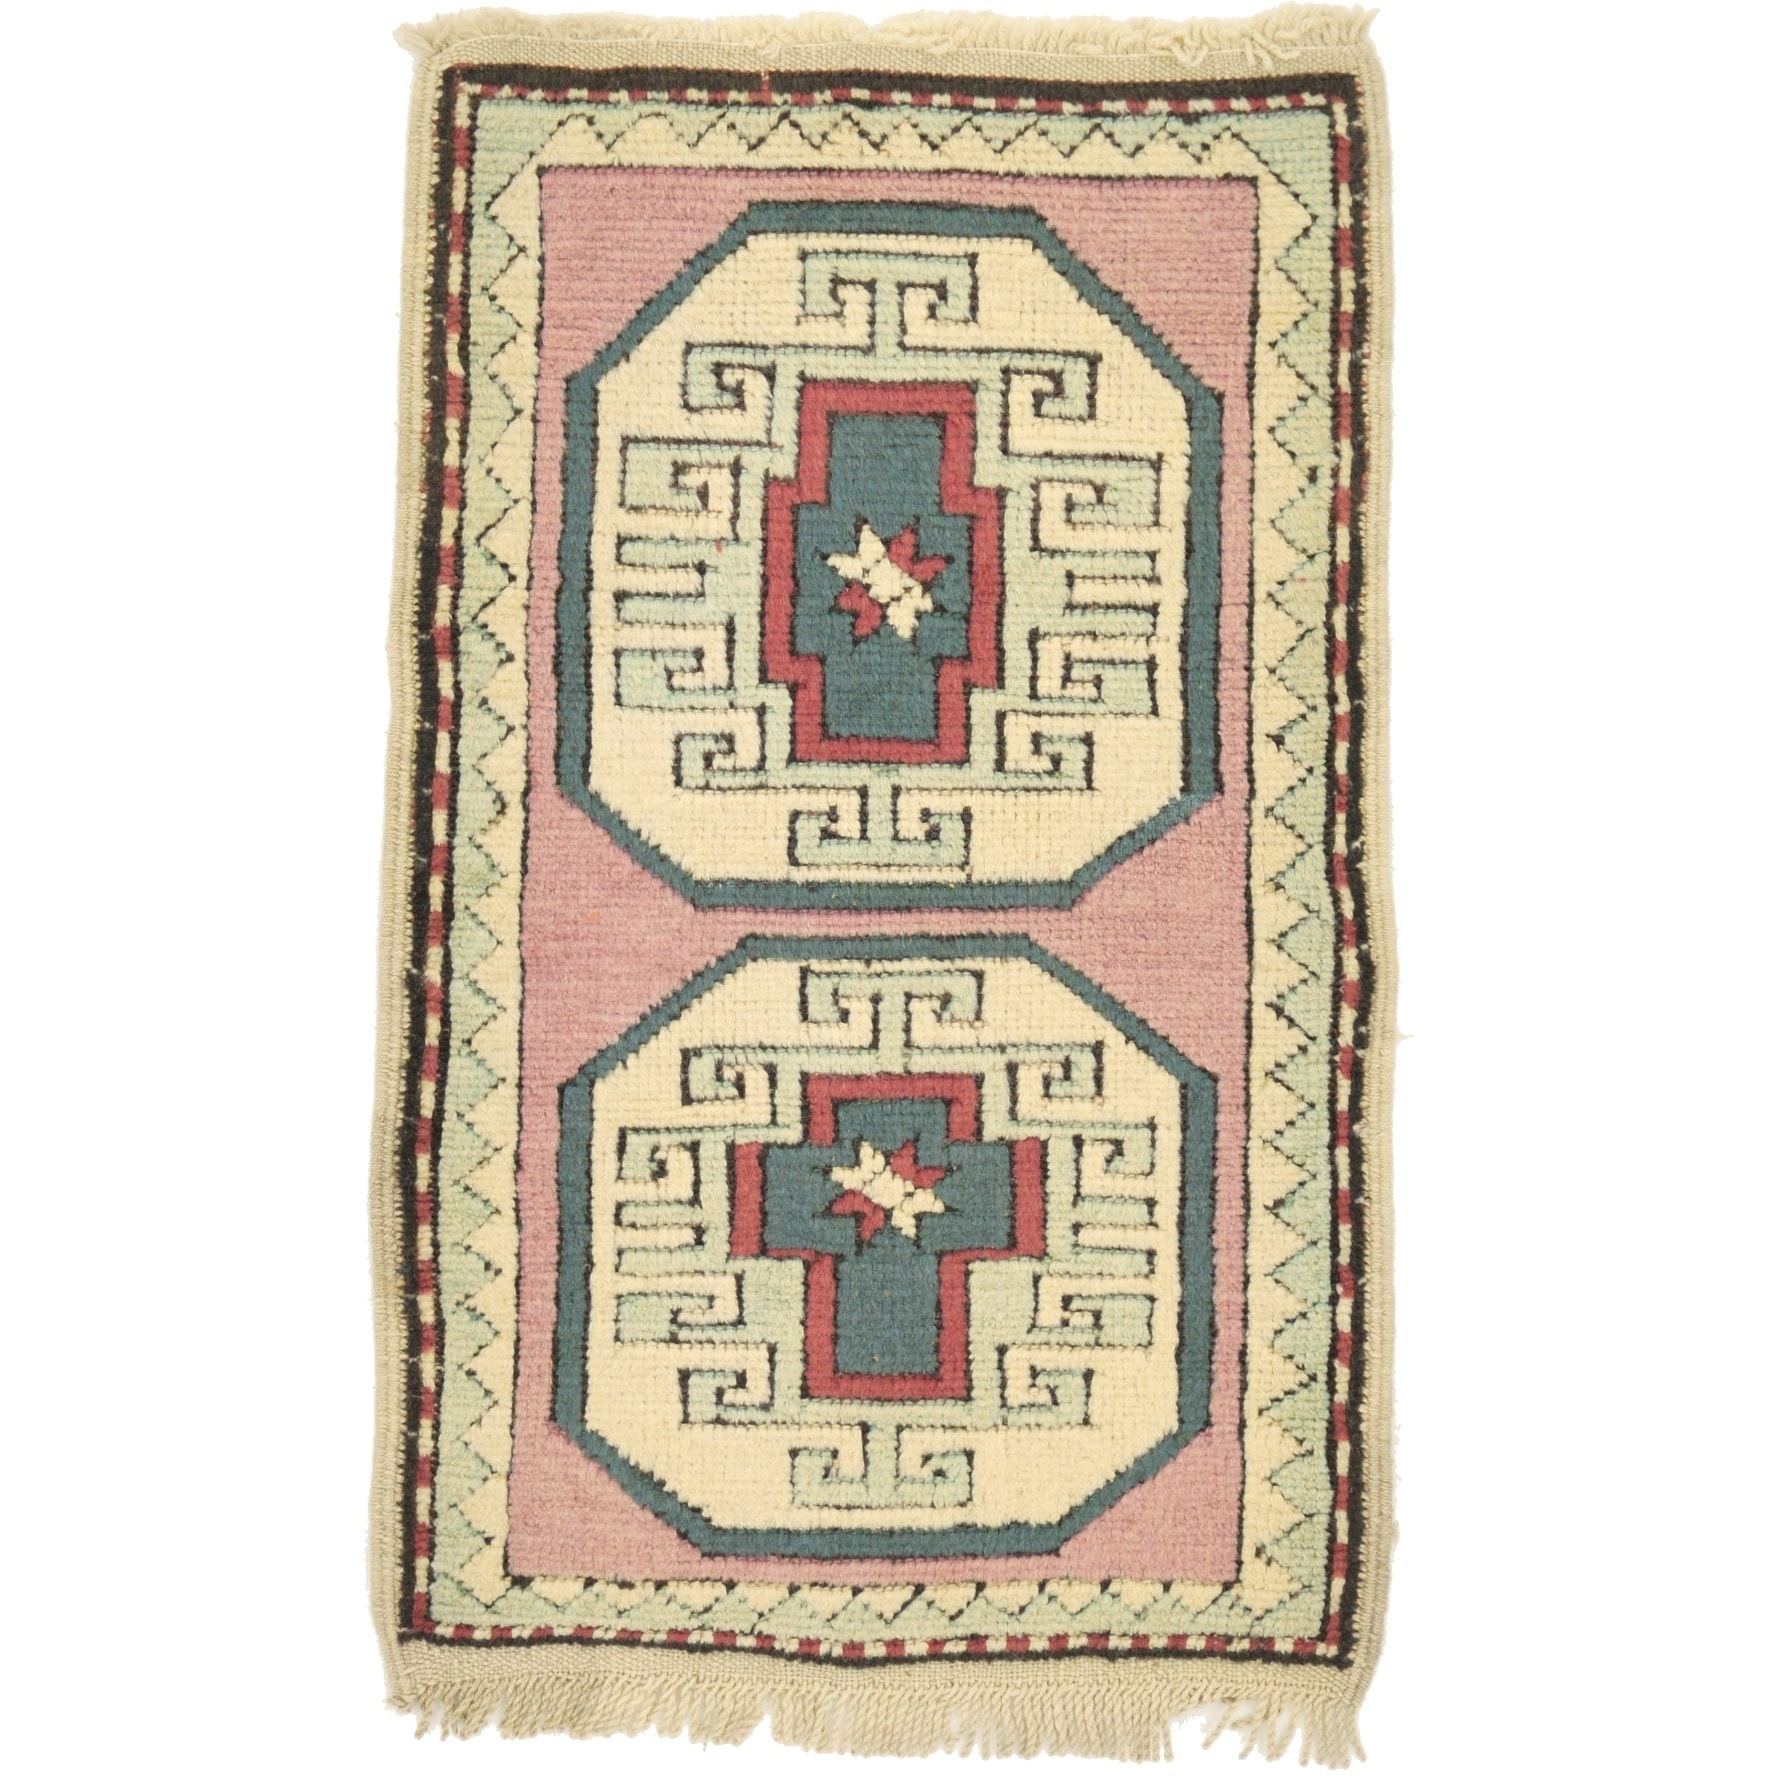 Hand Knotted Kars Wool Area Rug - 1' 10 x 3' (puce - 1' 10 x 3')